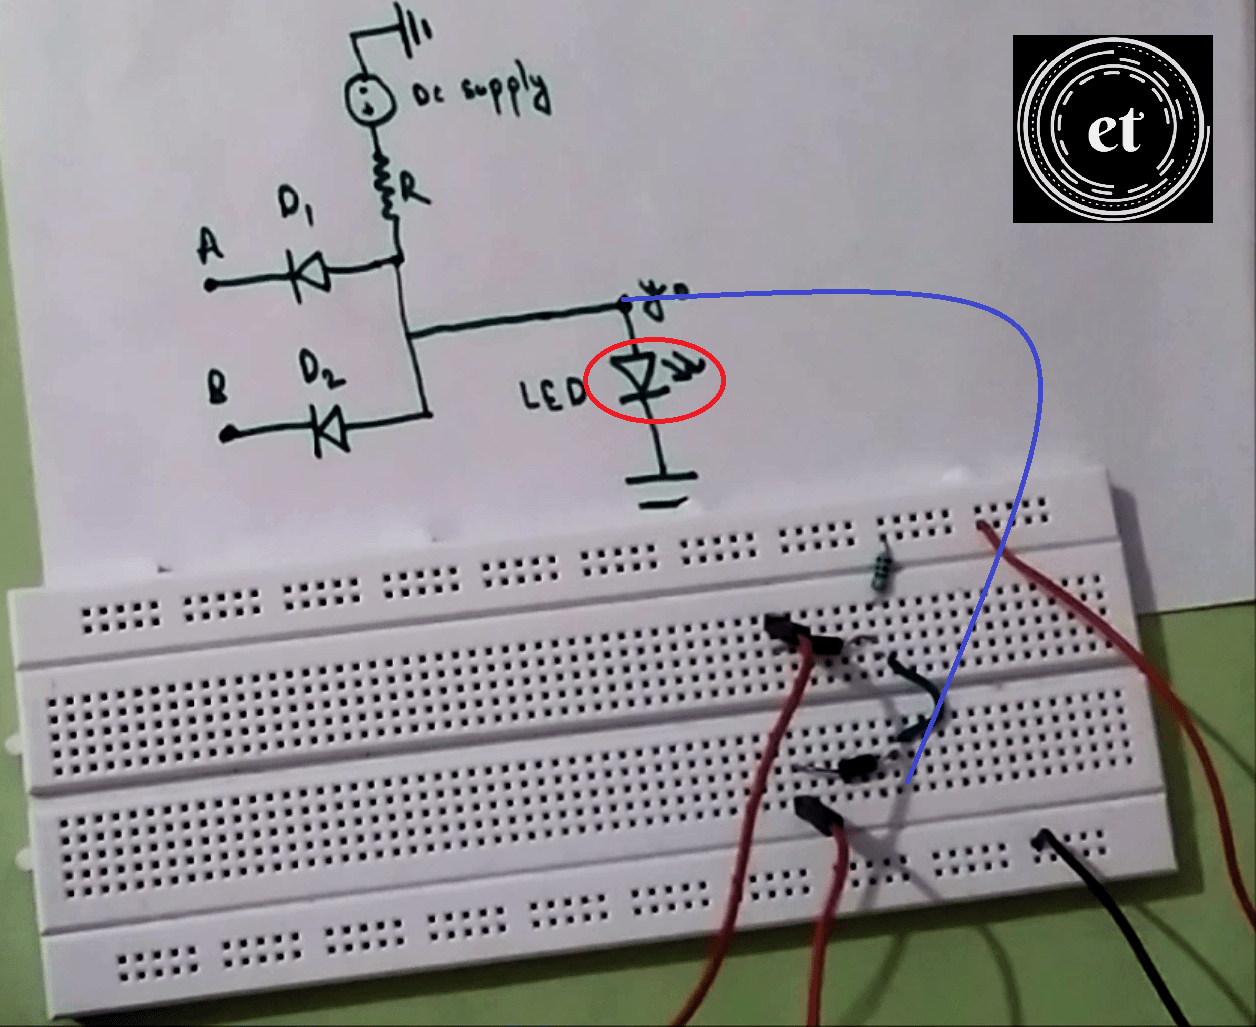 And Gate Circuit Diagram On Breadboard Web About Wiring 9 Volt Led How To Make An Using Diodes Rh Etechnophiles Com Not 35